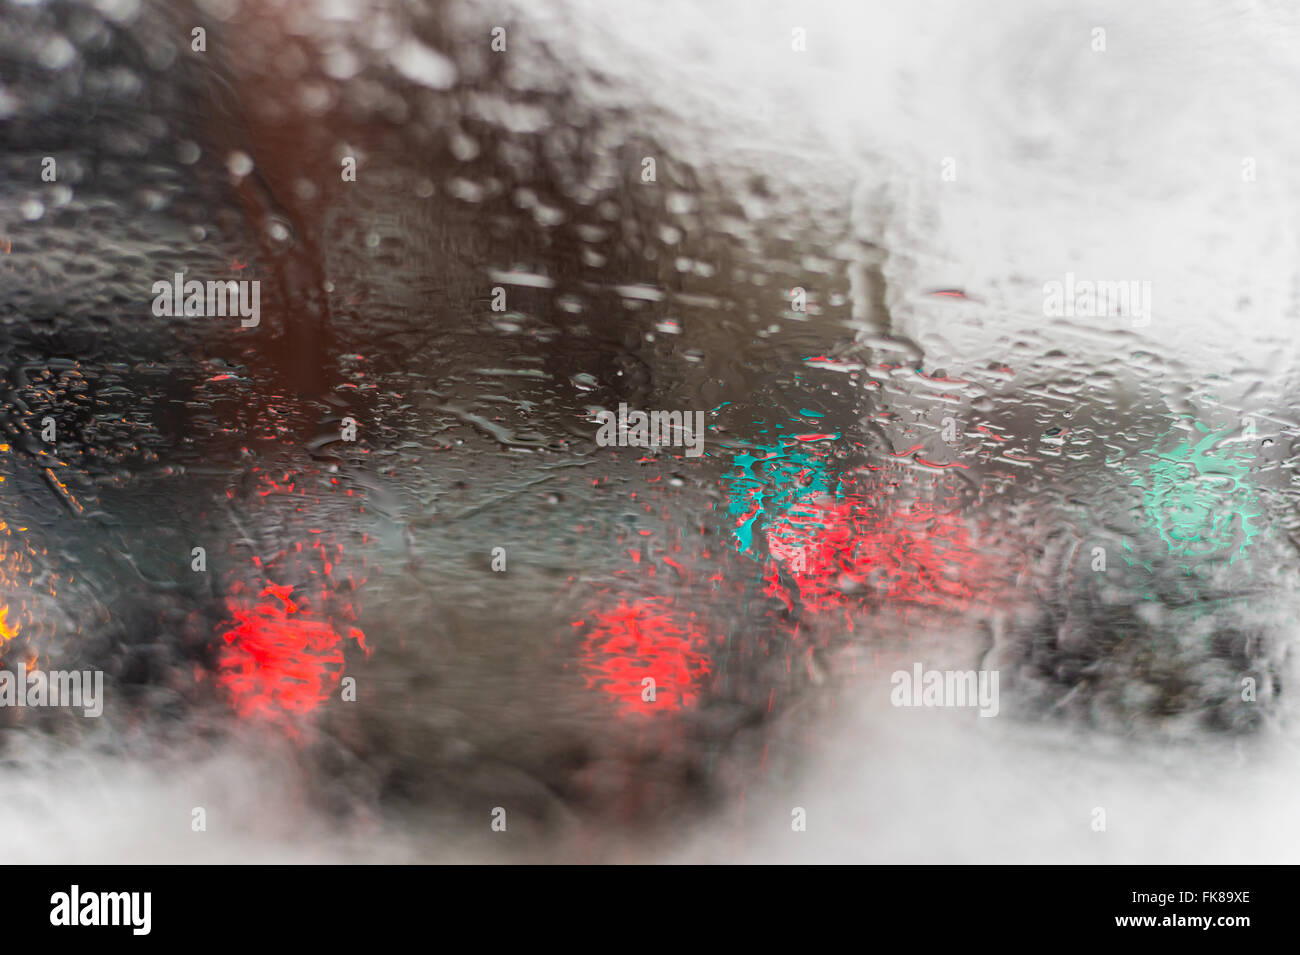 Road view through car window with rain drops and melting snow, Driving during snow storm in Montreal - Stock Image